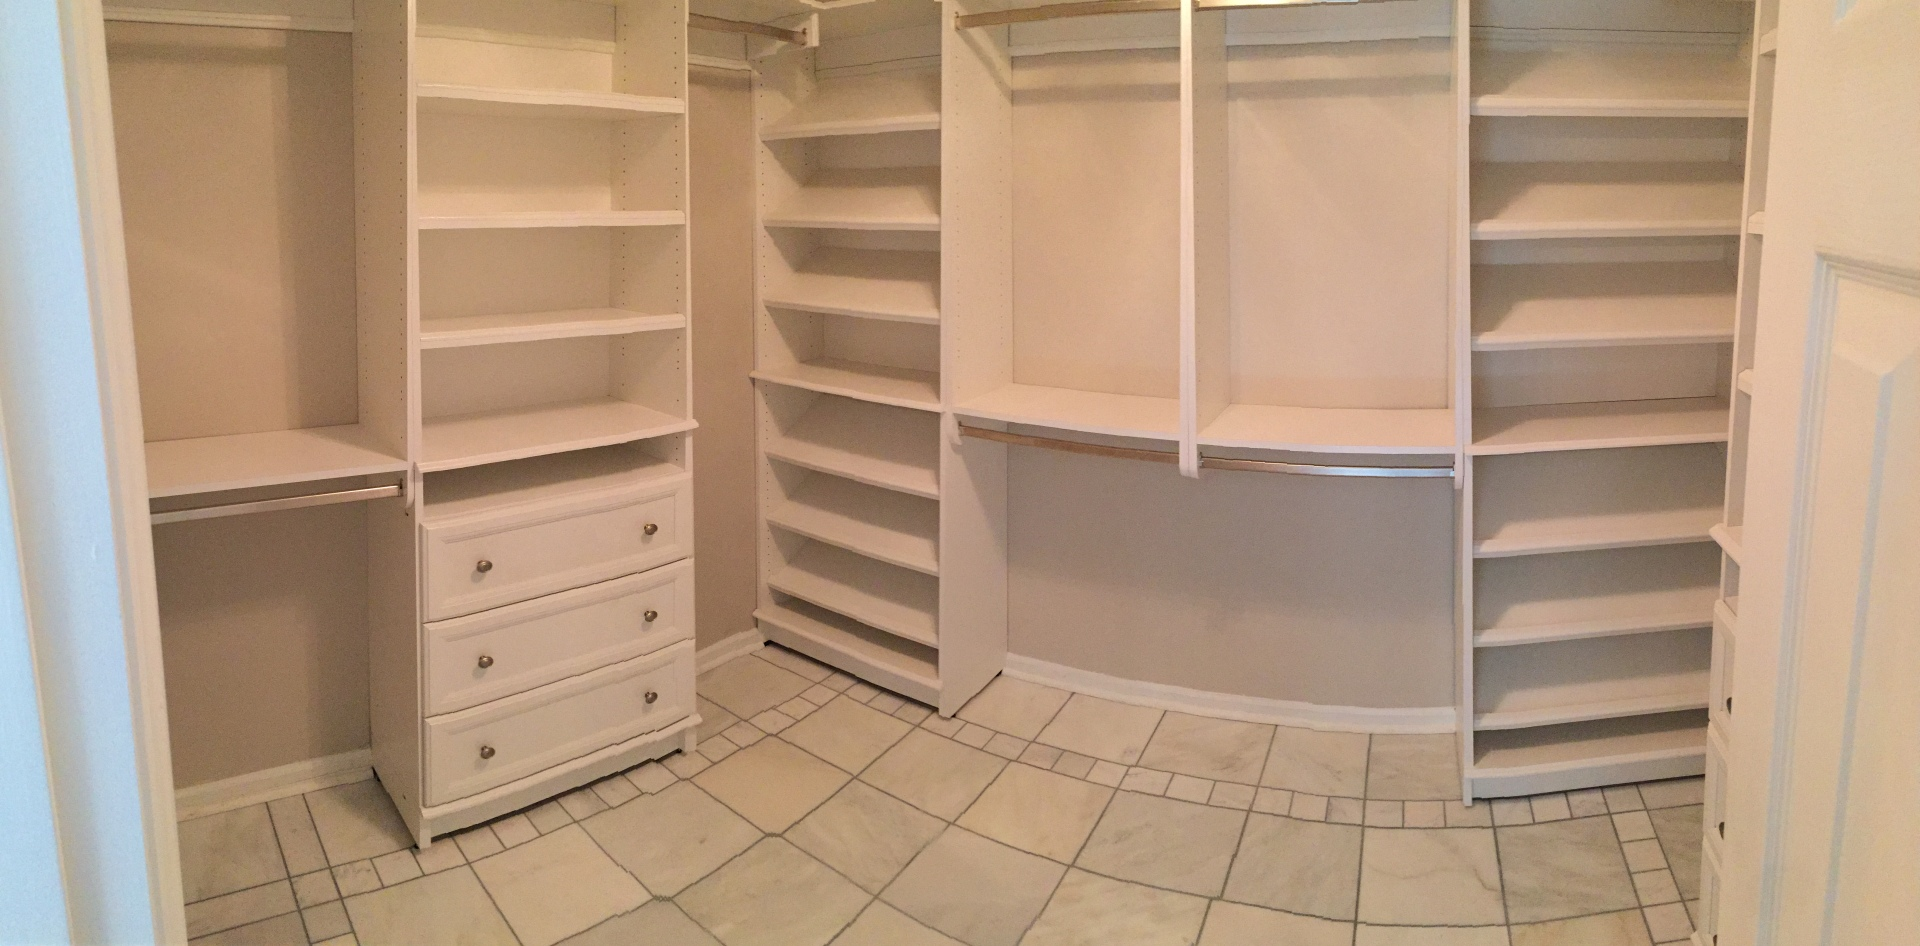 closet, organize, rods, shelves, drawers